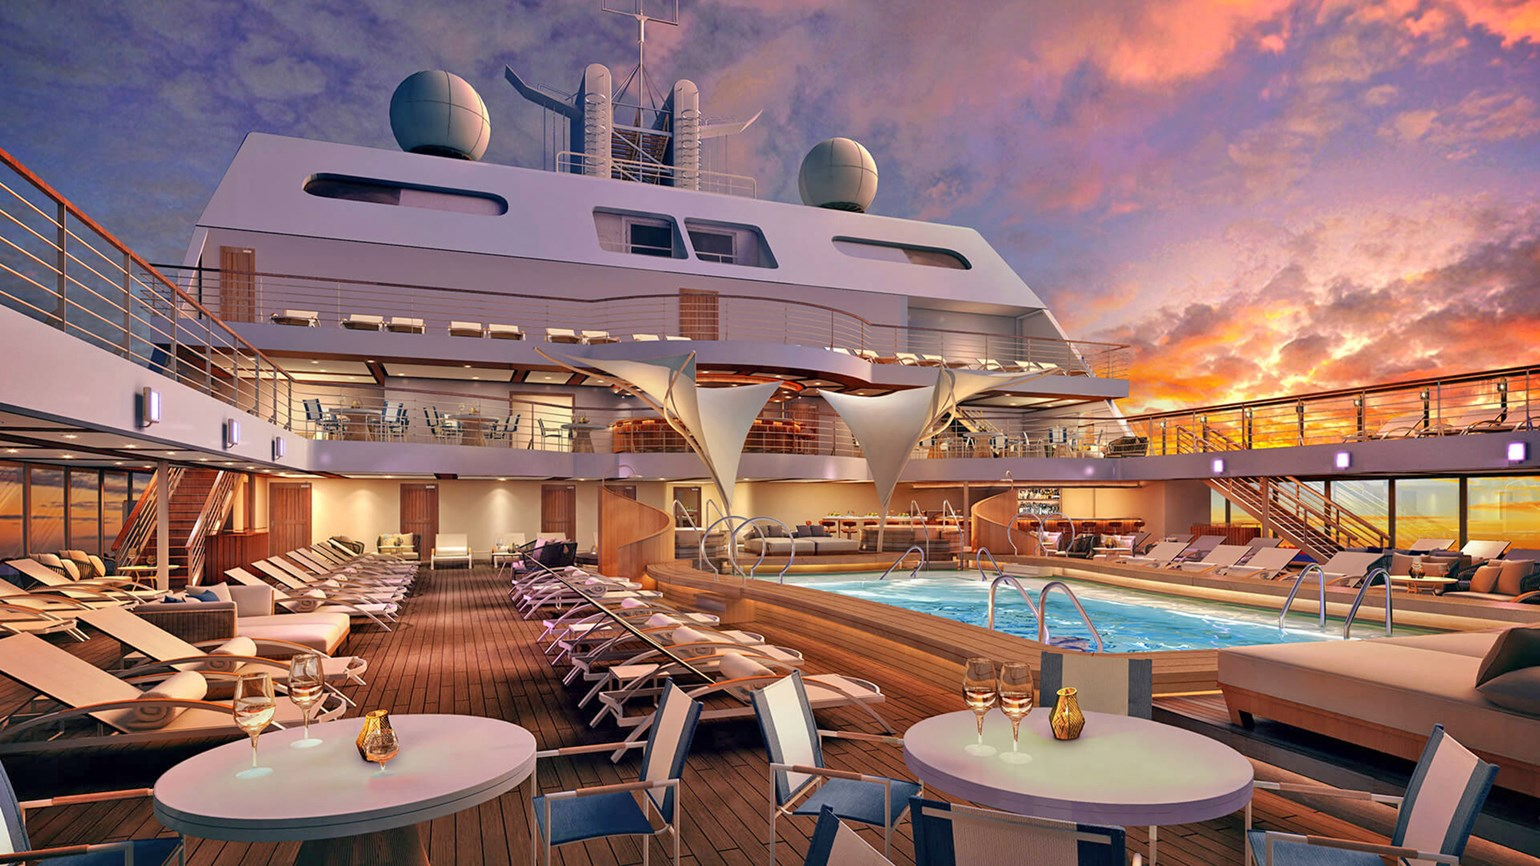 Reservation books open for Seabourn Encore